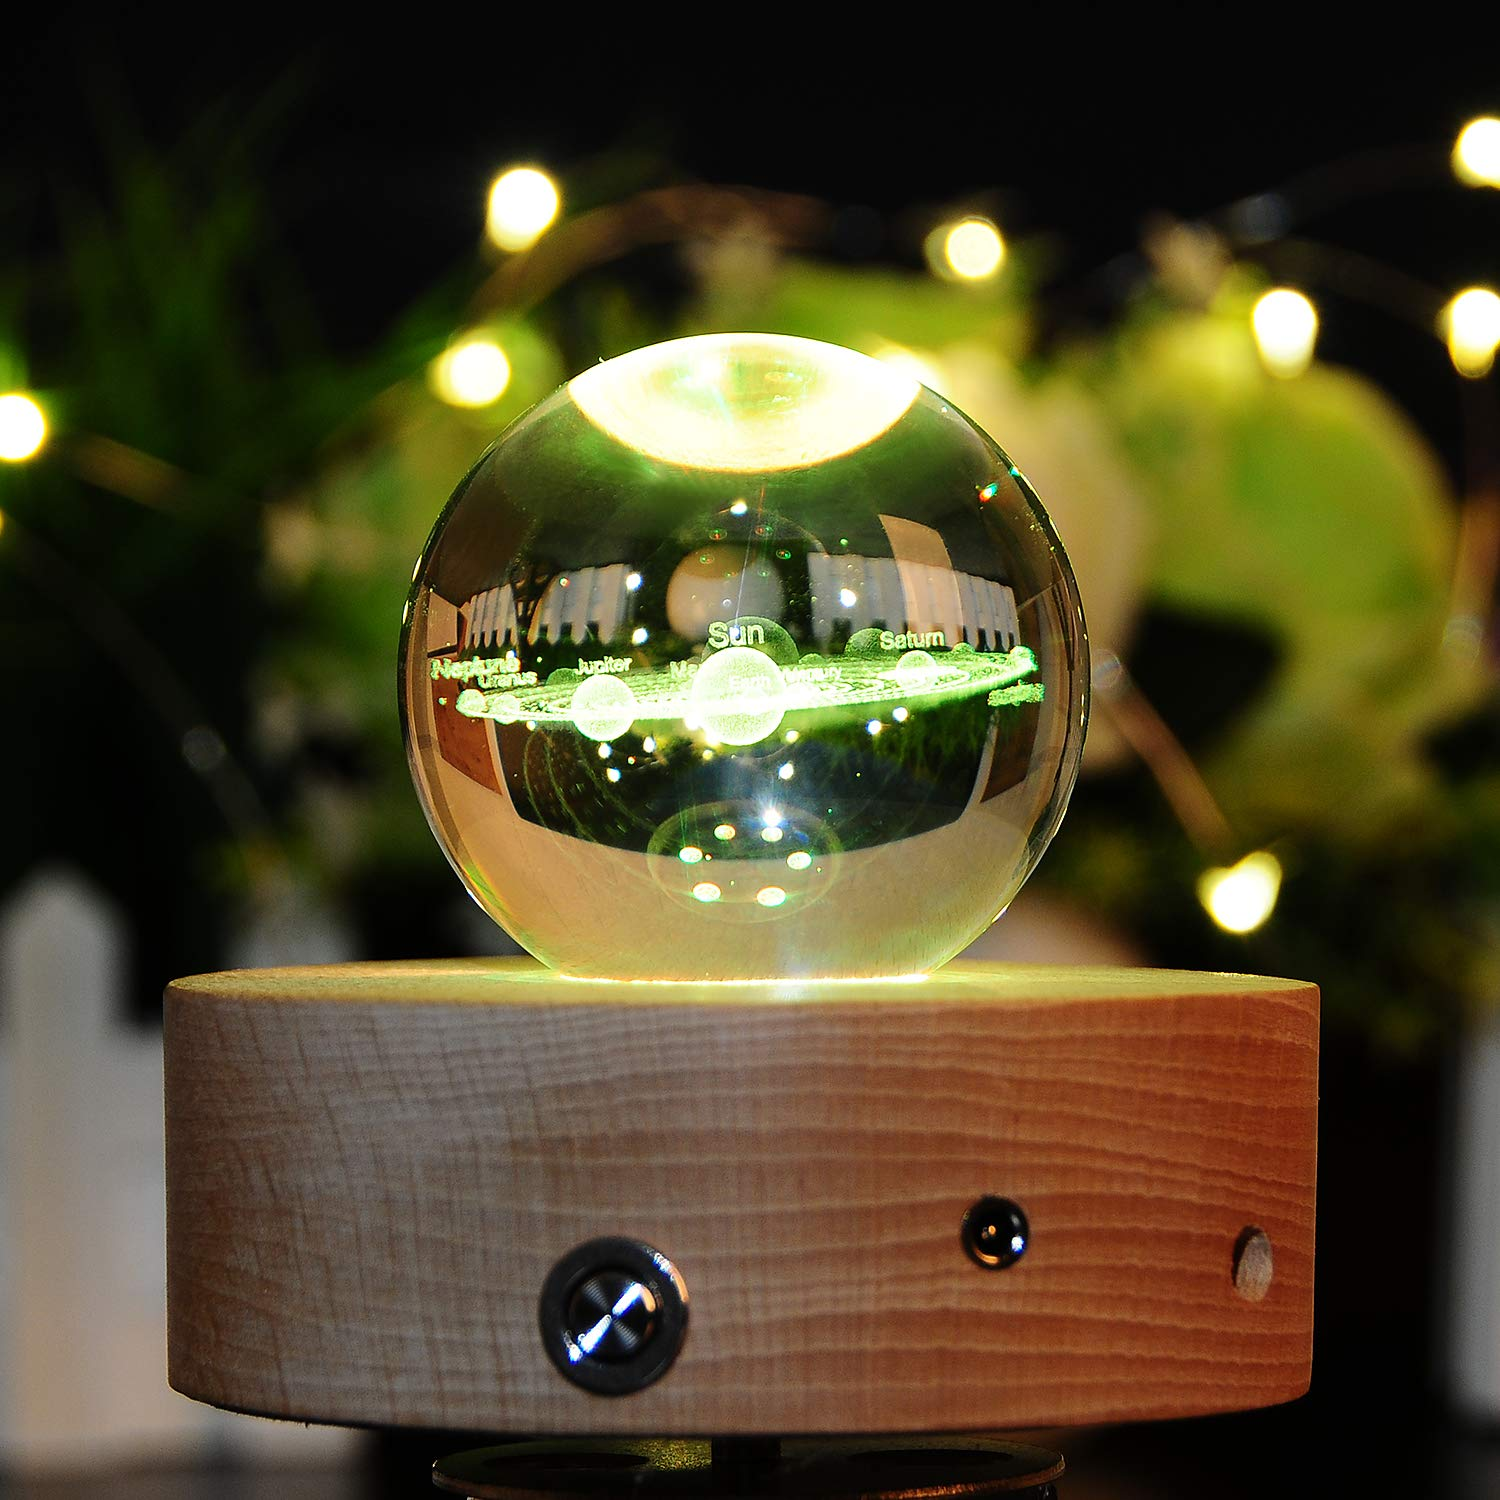 3D Crystal Ball with Solar System Model 60mm (2.36 inch) Glass Sphere Best Birthday Gift for Kids, Teacher of Physics, Astronomer, Lover of Universe, Boy/Girlfriend, Classmates